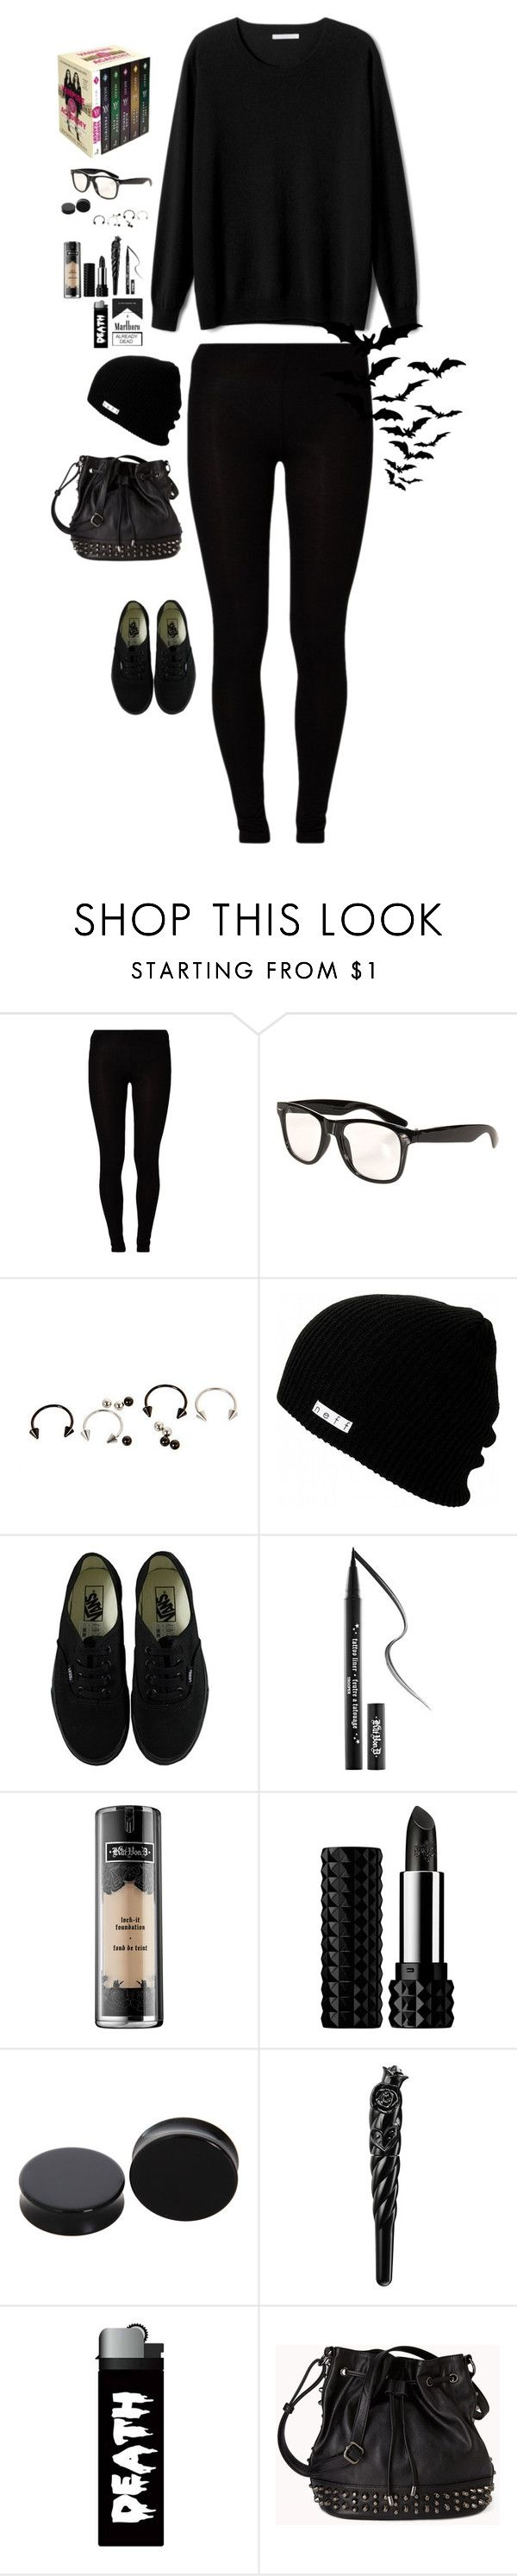 """""""I'm A Book Nerd and I Wear A Lot Of Black"""" by tellthewolvesimhome ❤ liked on Polyvore featuring Mead, Majestic, MTWTFSS Collection, Neff, Vans, Kat Von D, Anna Sui and Forever 21"""